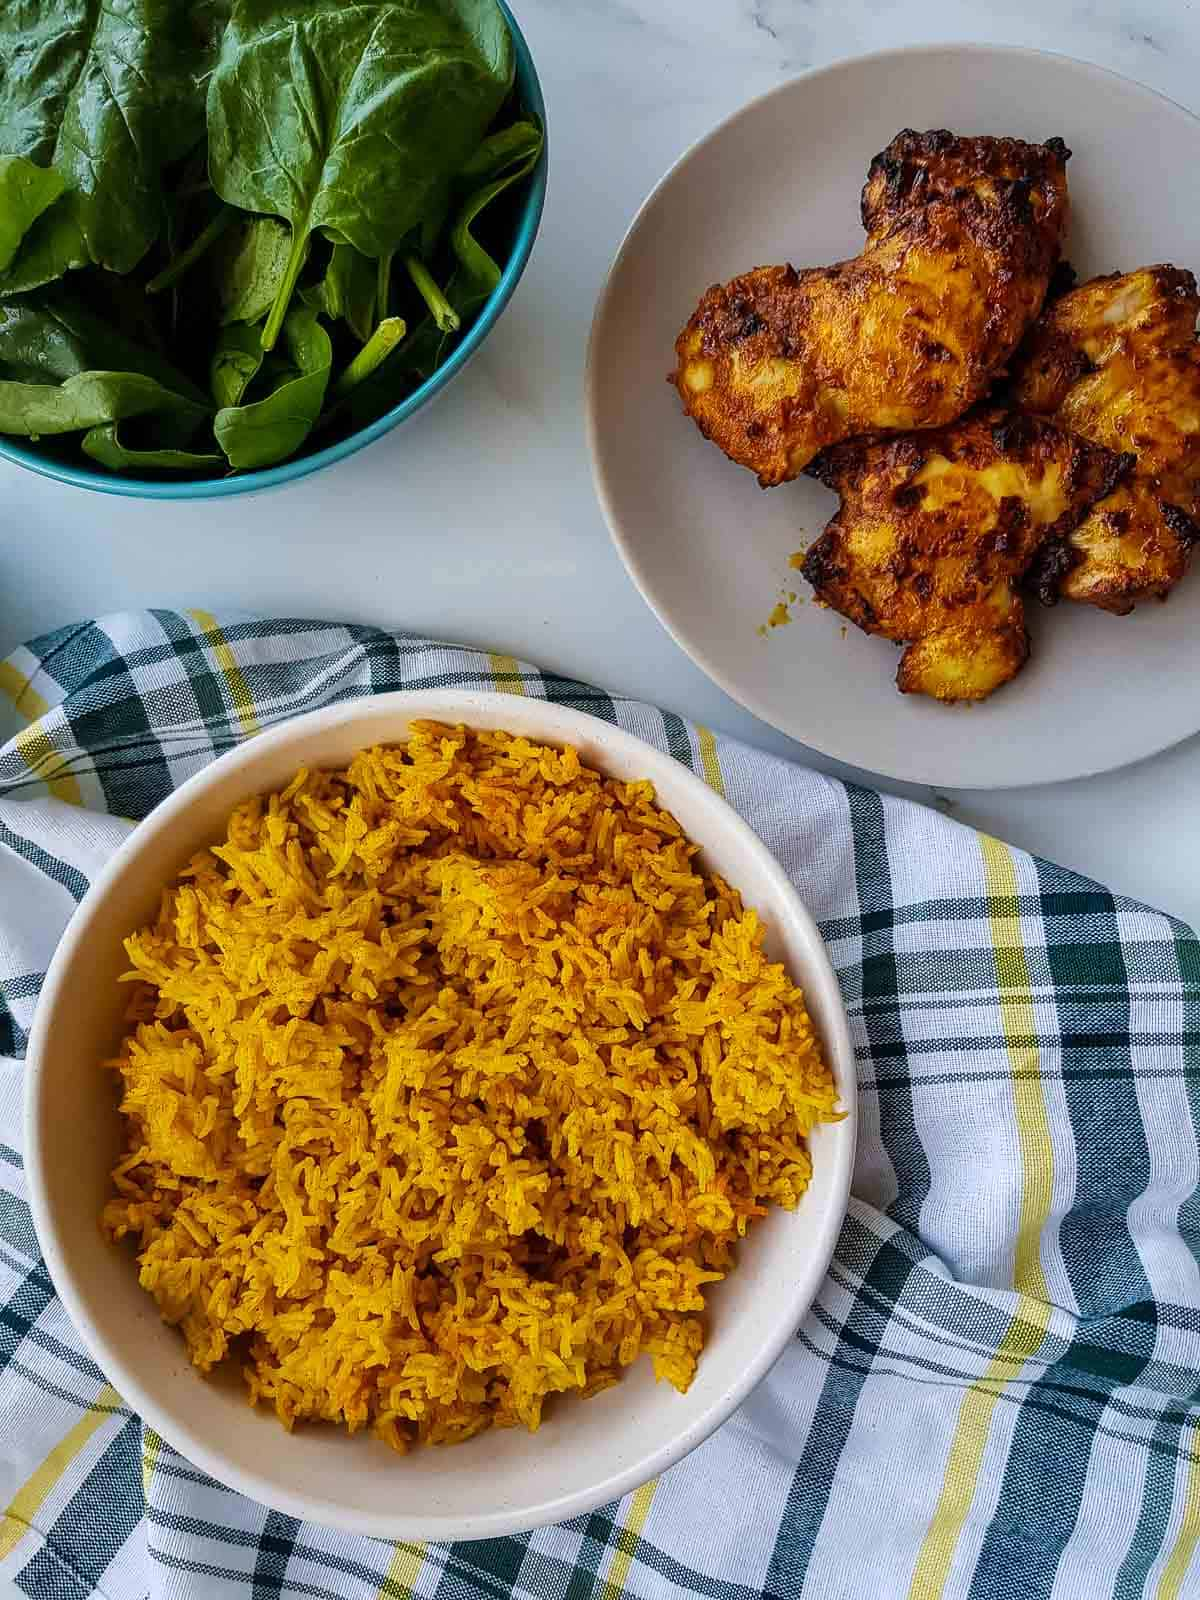 Rice in a bowl with chicken and salad on the side.